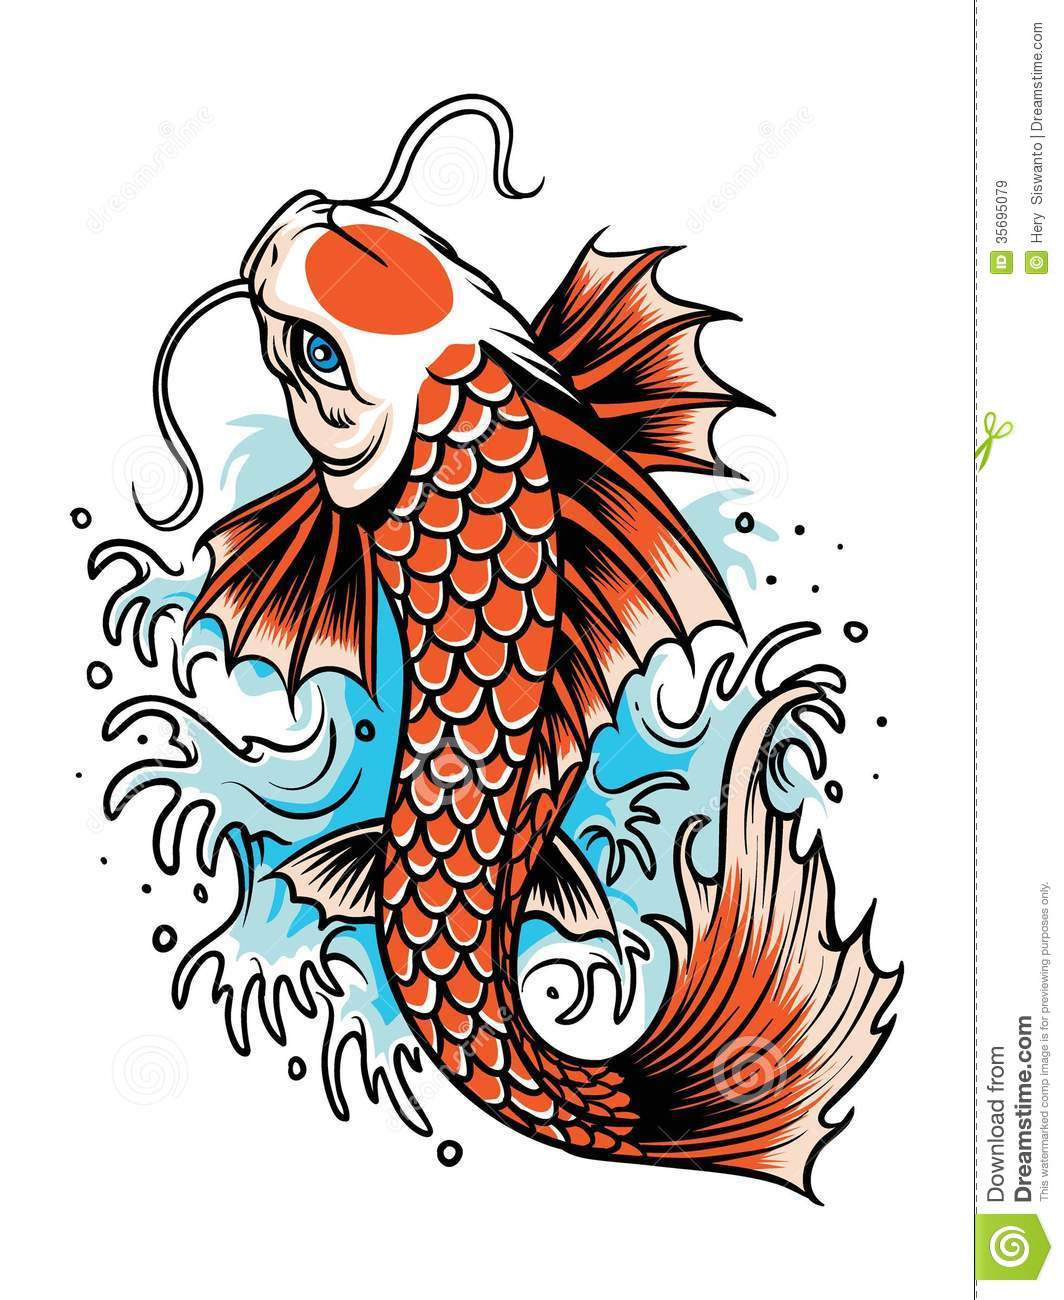 Tattoos and body art koi and fish on pinterest for Koi fish vector